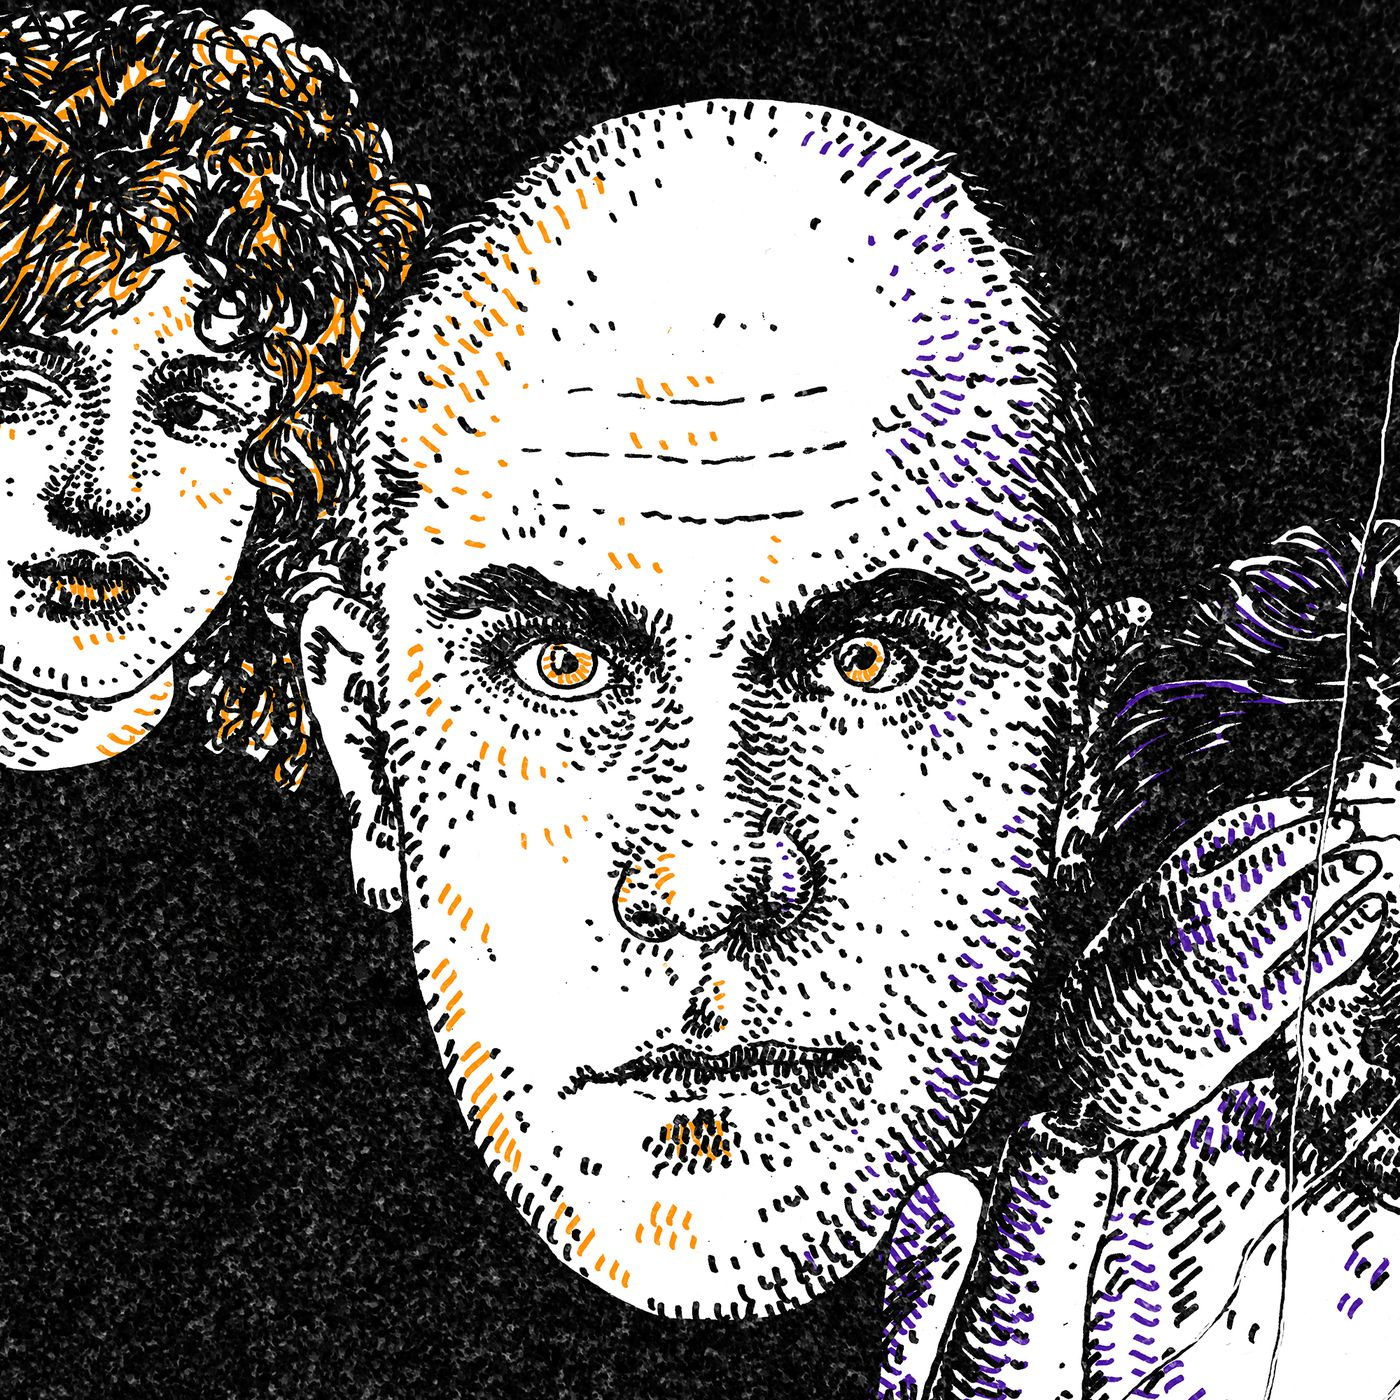 theringer.com - Rob Harvilla - 'Being John Malkovich' Was a Head Trip Masterpiece-and the Best Film of 1999